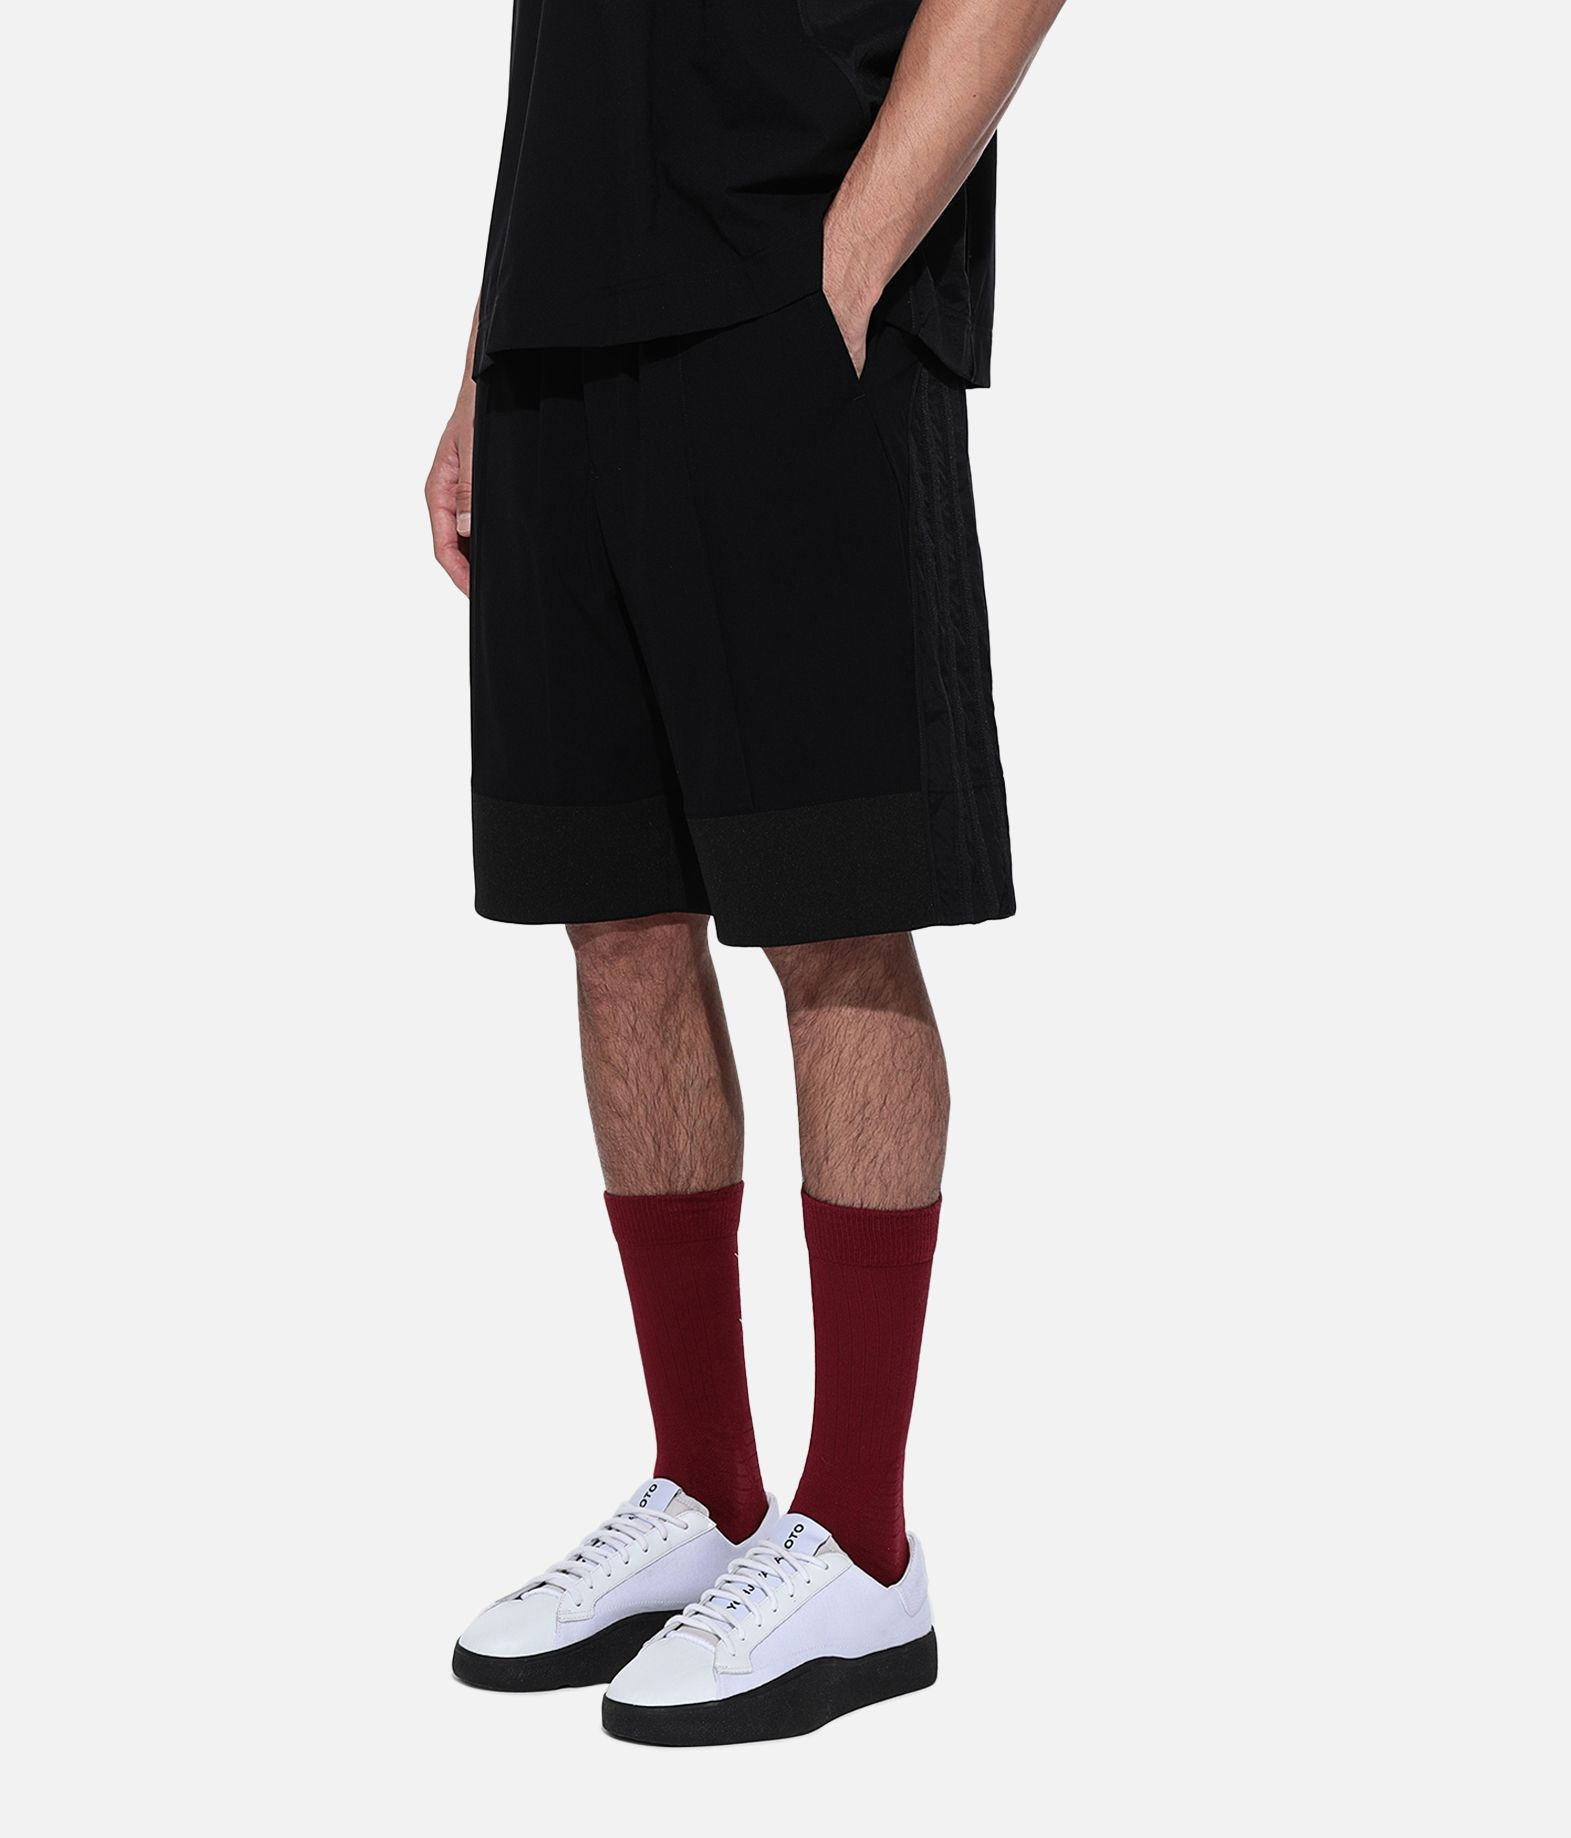 Y-3 Y-3 3-Stripes Material Mix Shorts Shorts Man e